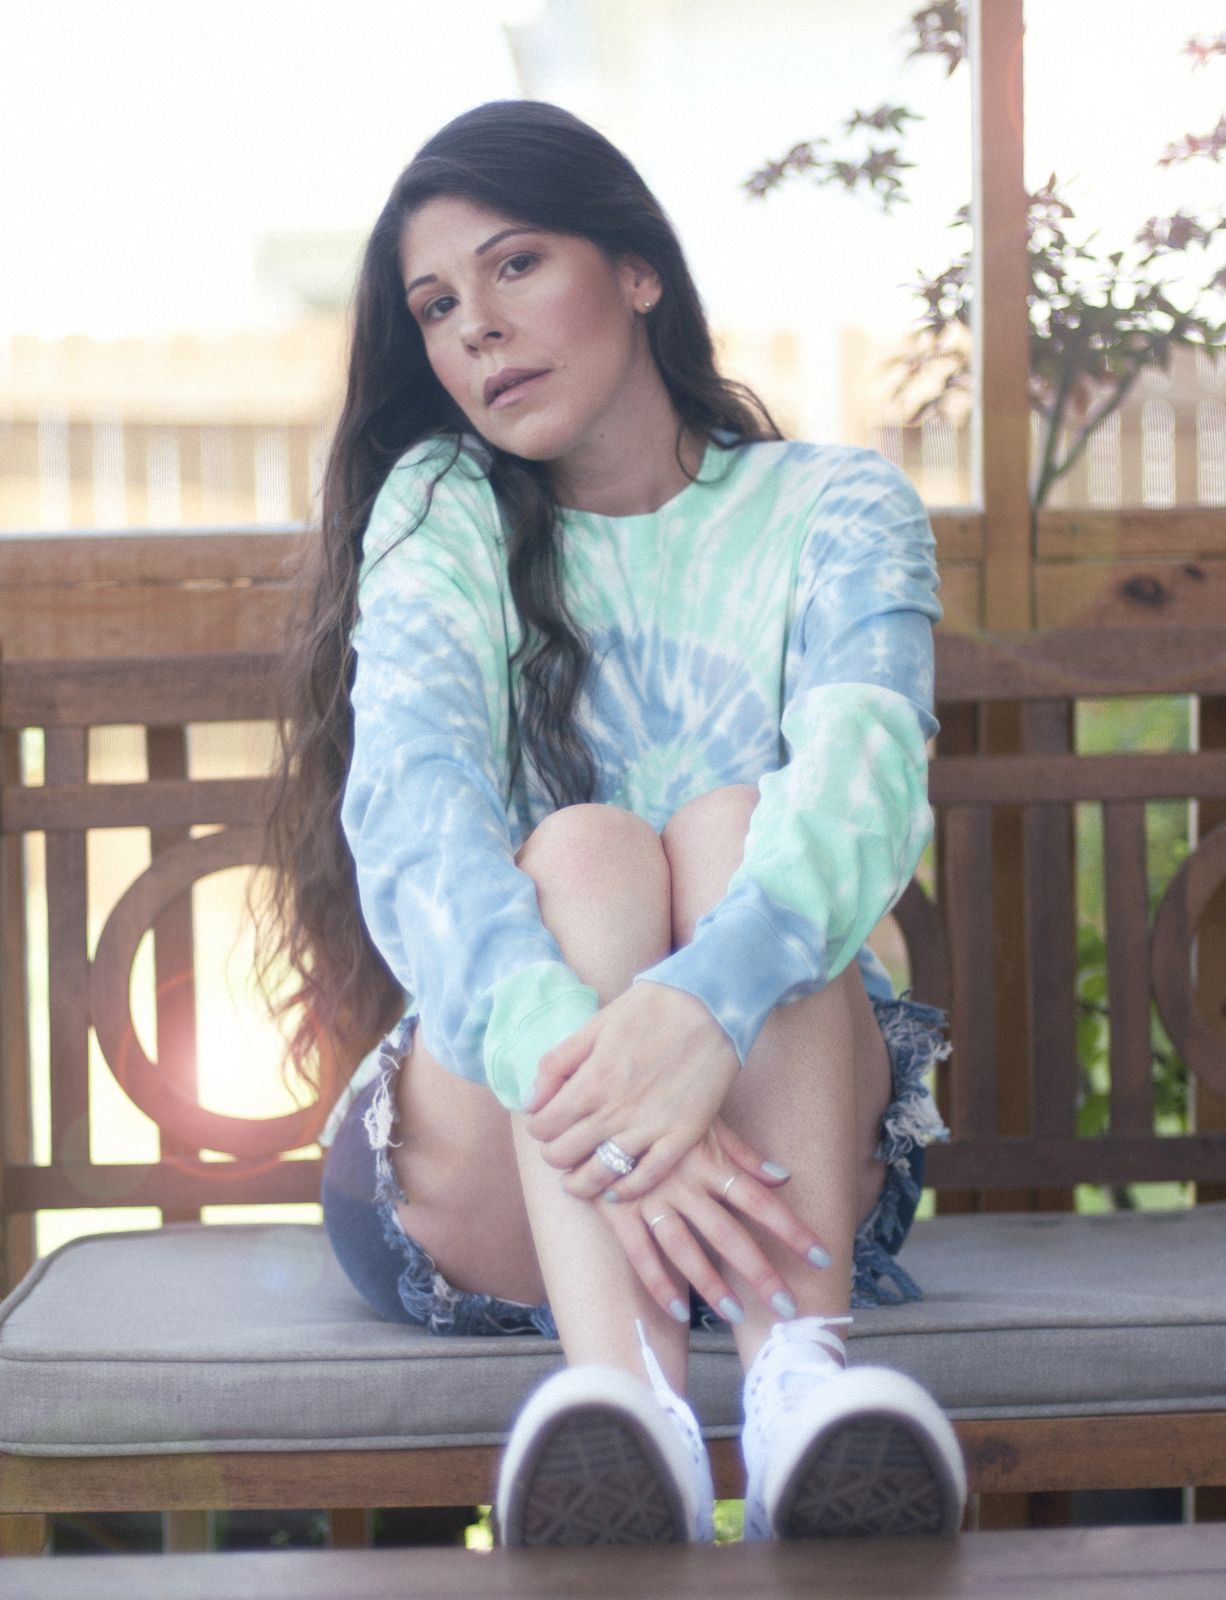 FALLING FOR THE TIE DYE TREND